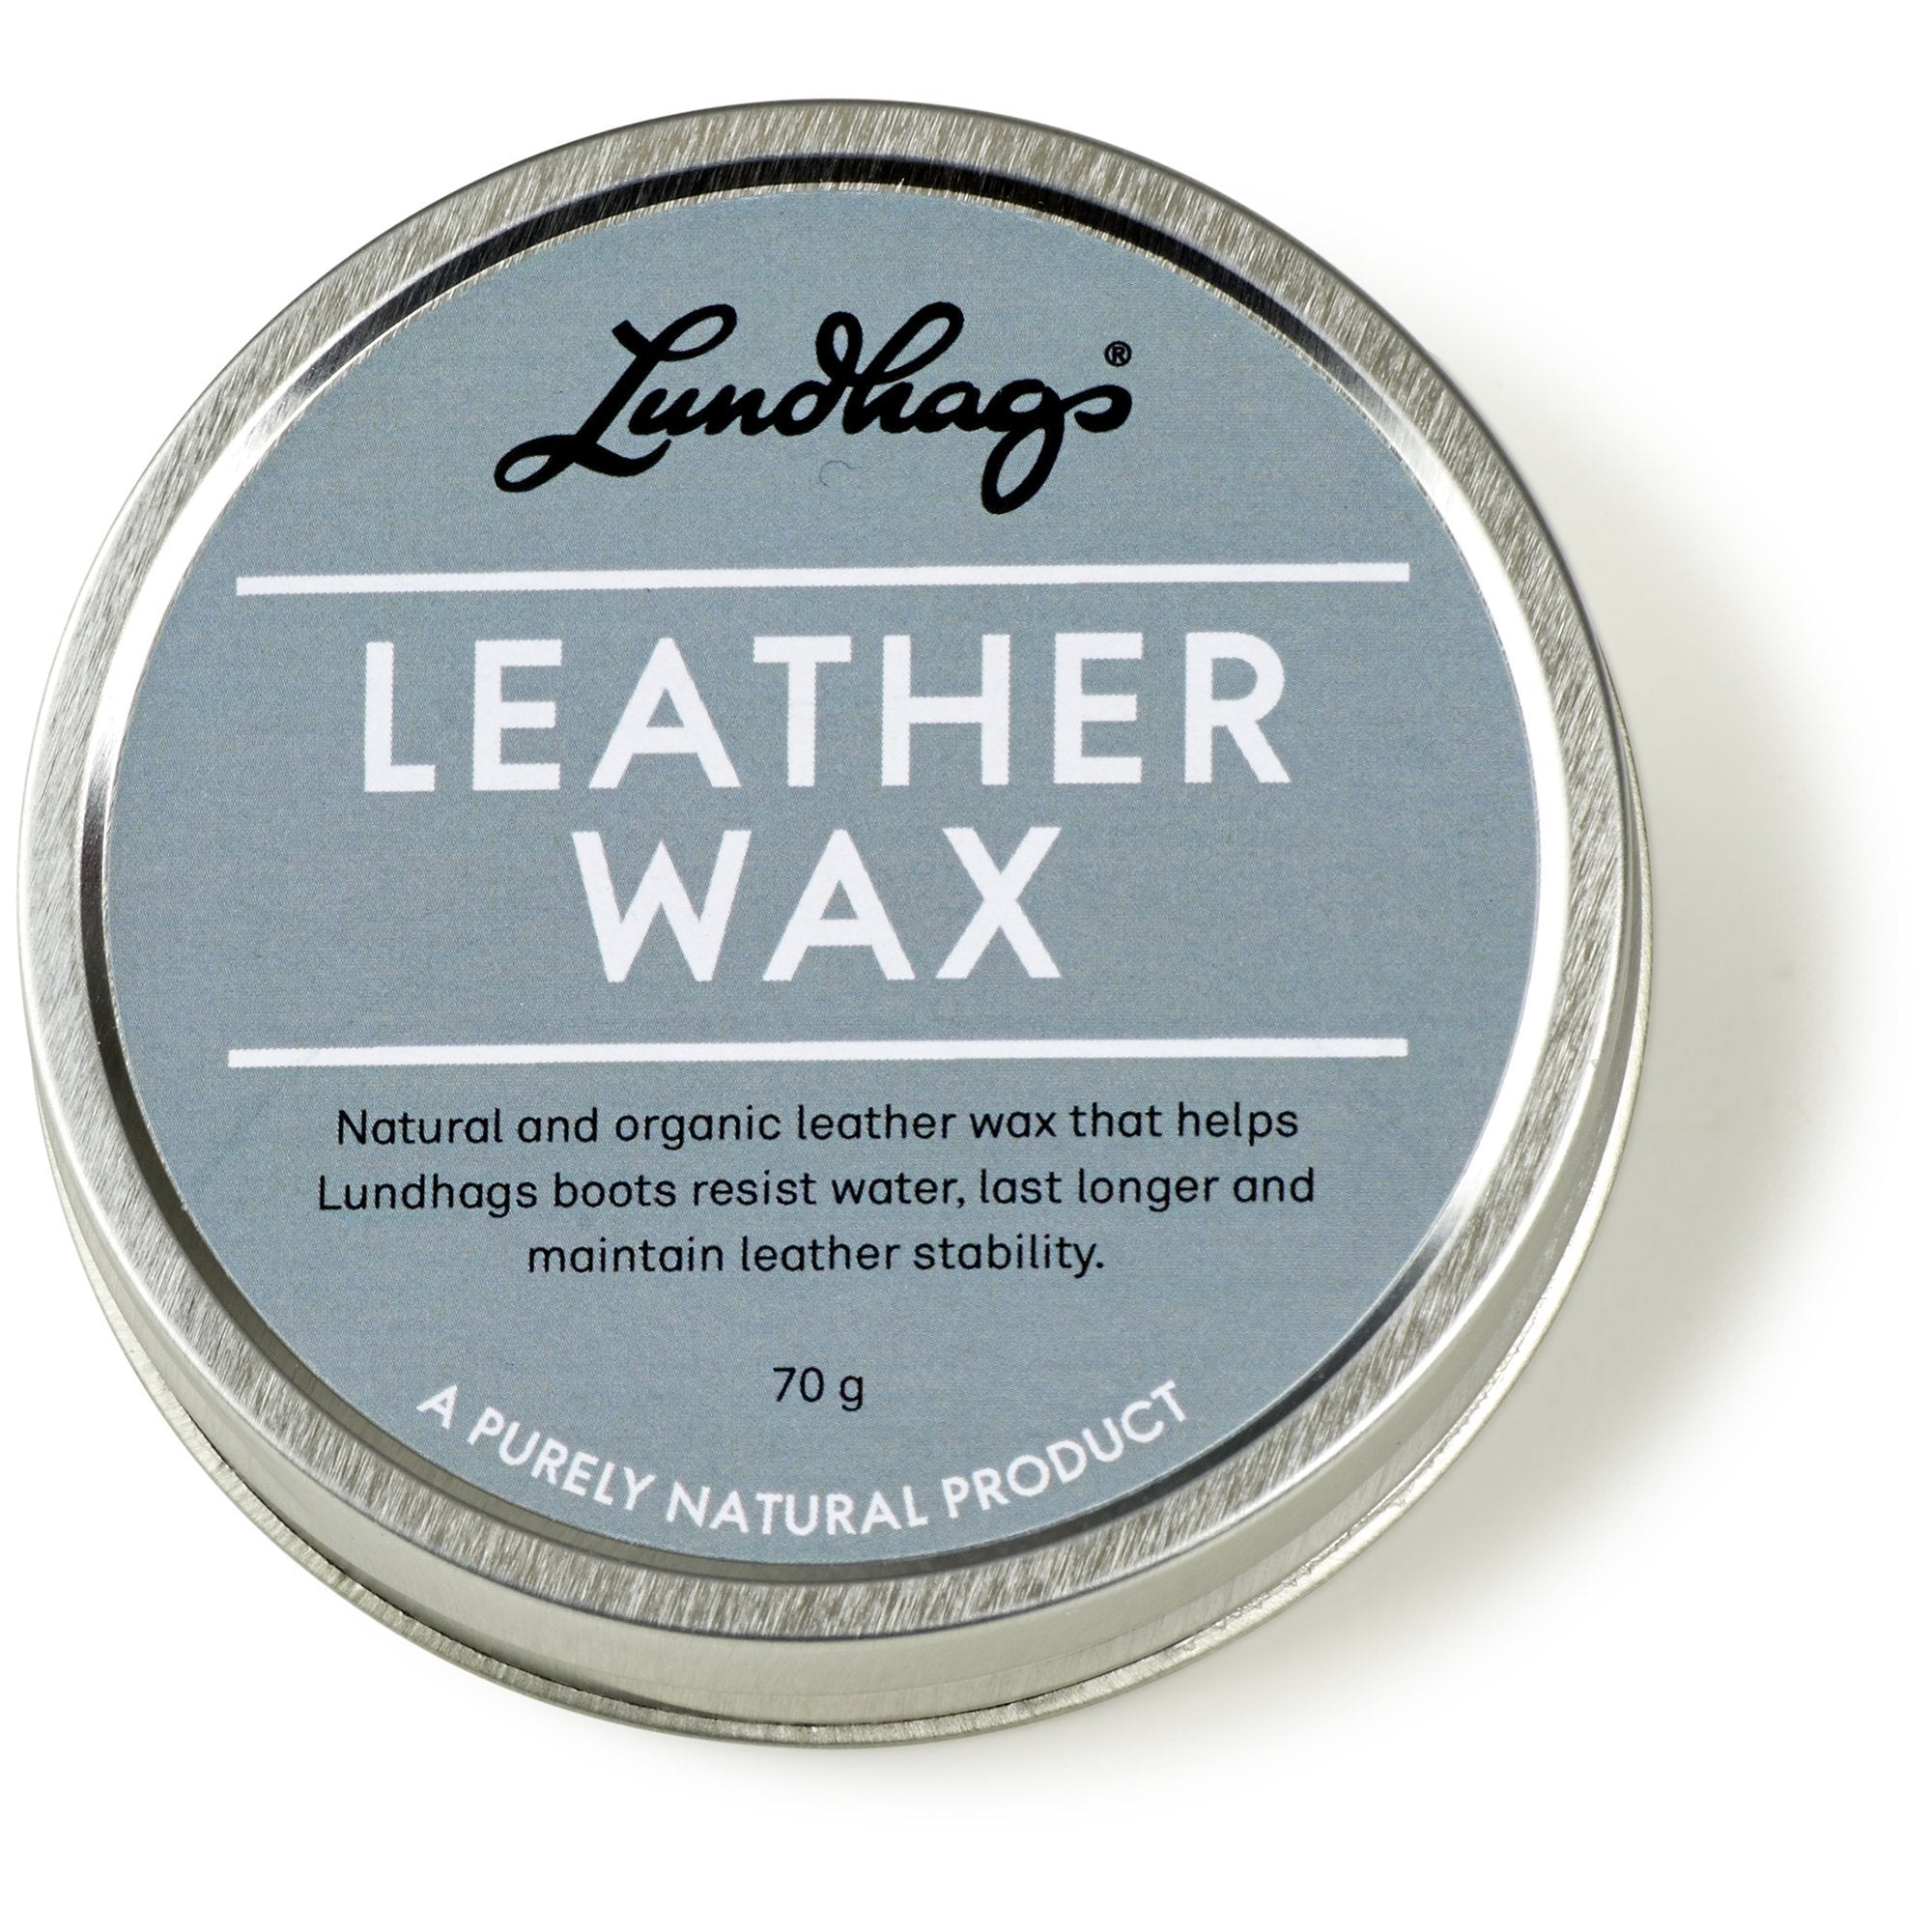 Lundhags Leather Wax - Lädervax - Vindpinad